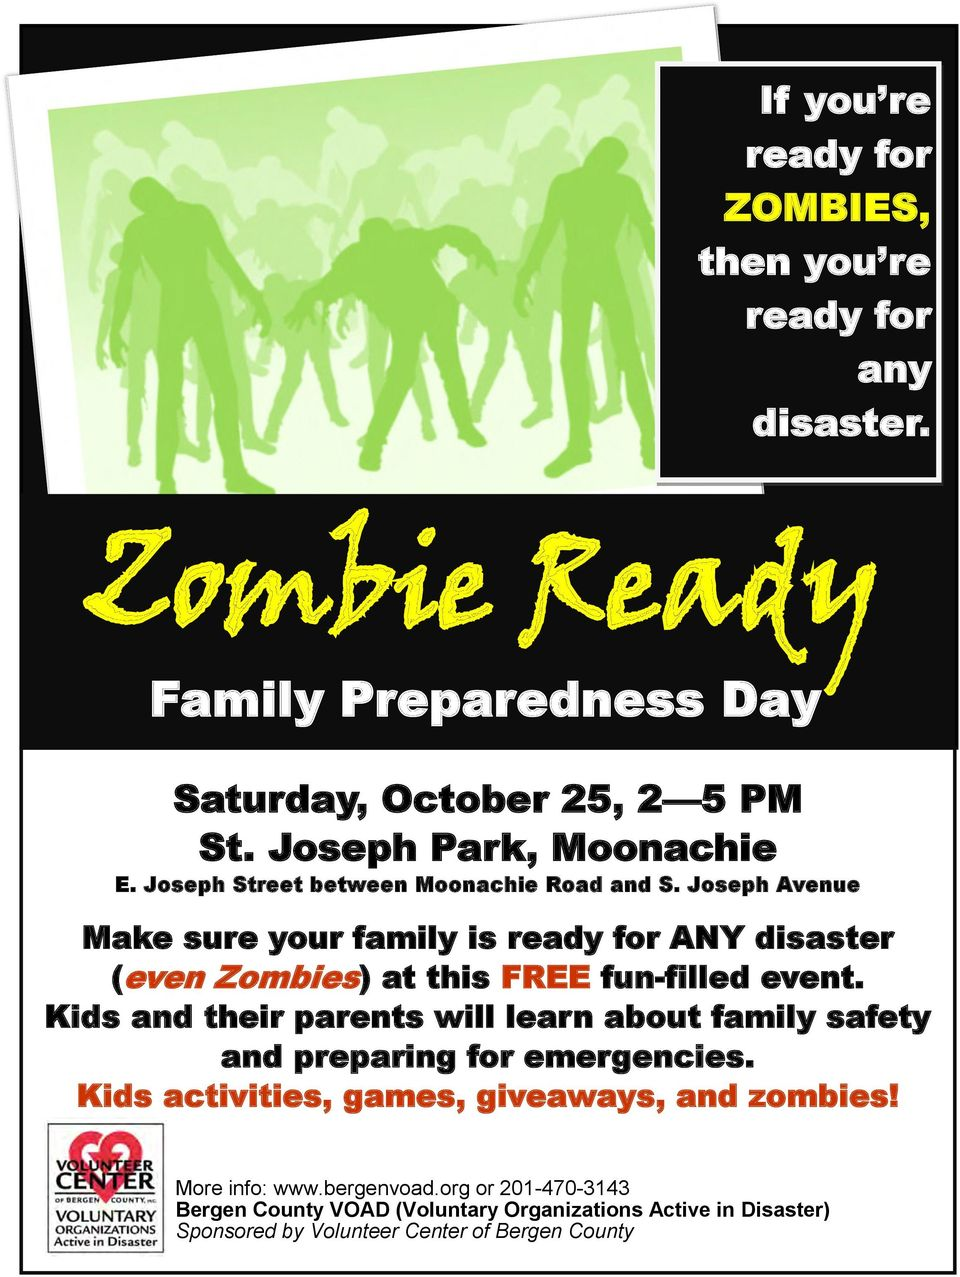 Joseph Avenue Make sure your family is ready for ANY disaster (even Zombies) at this FREE fun-filled event.